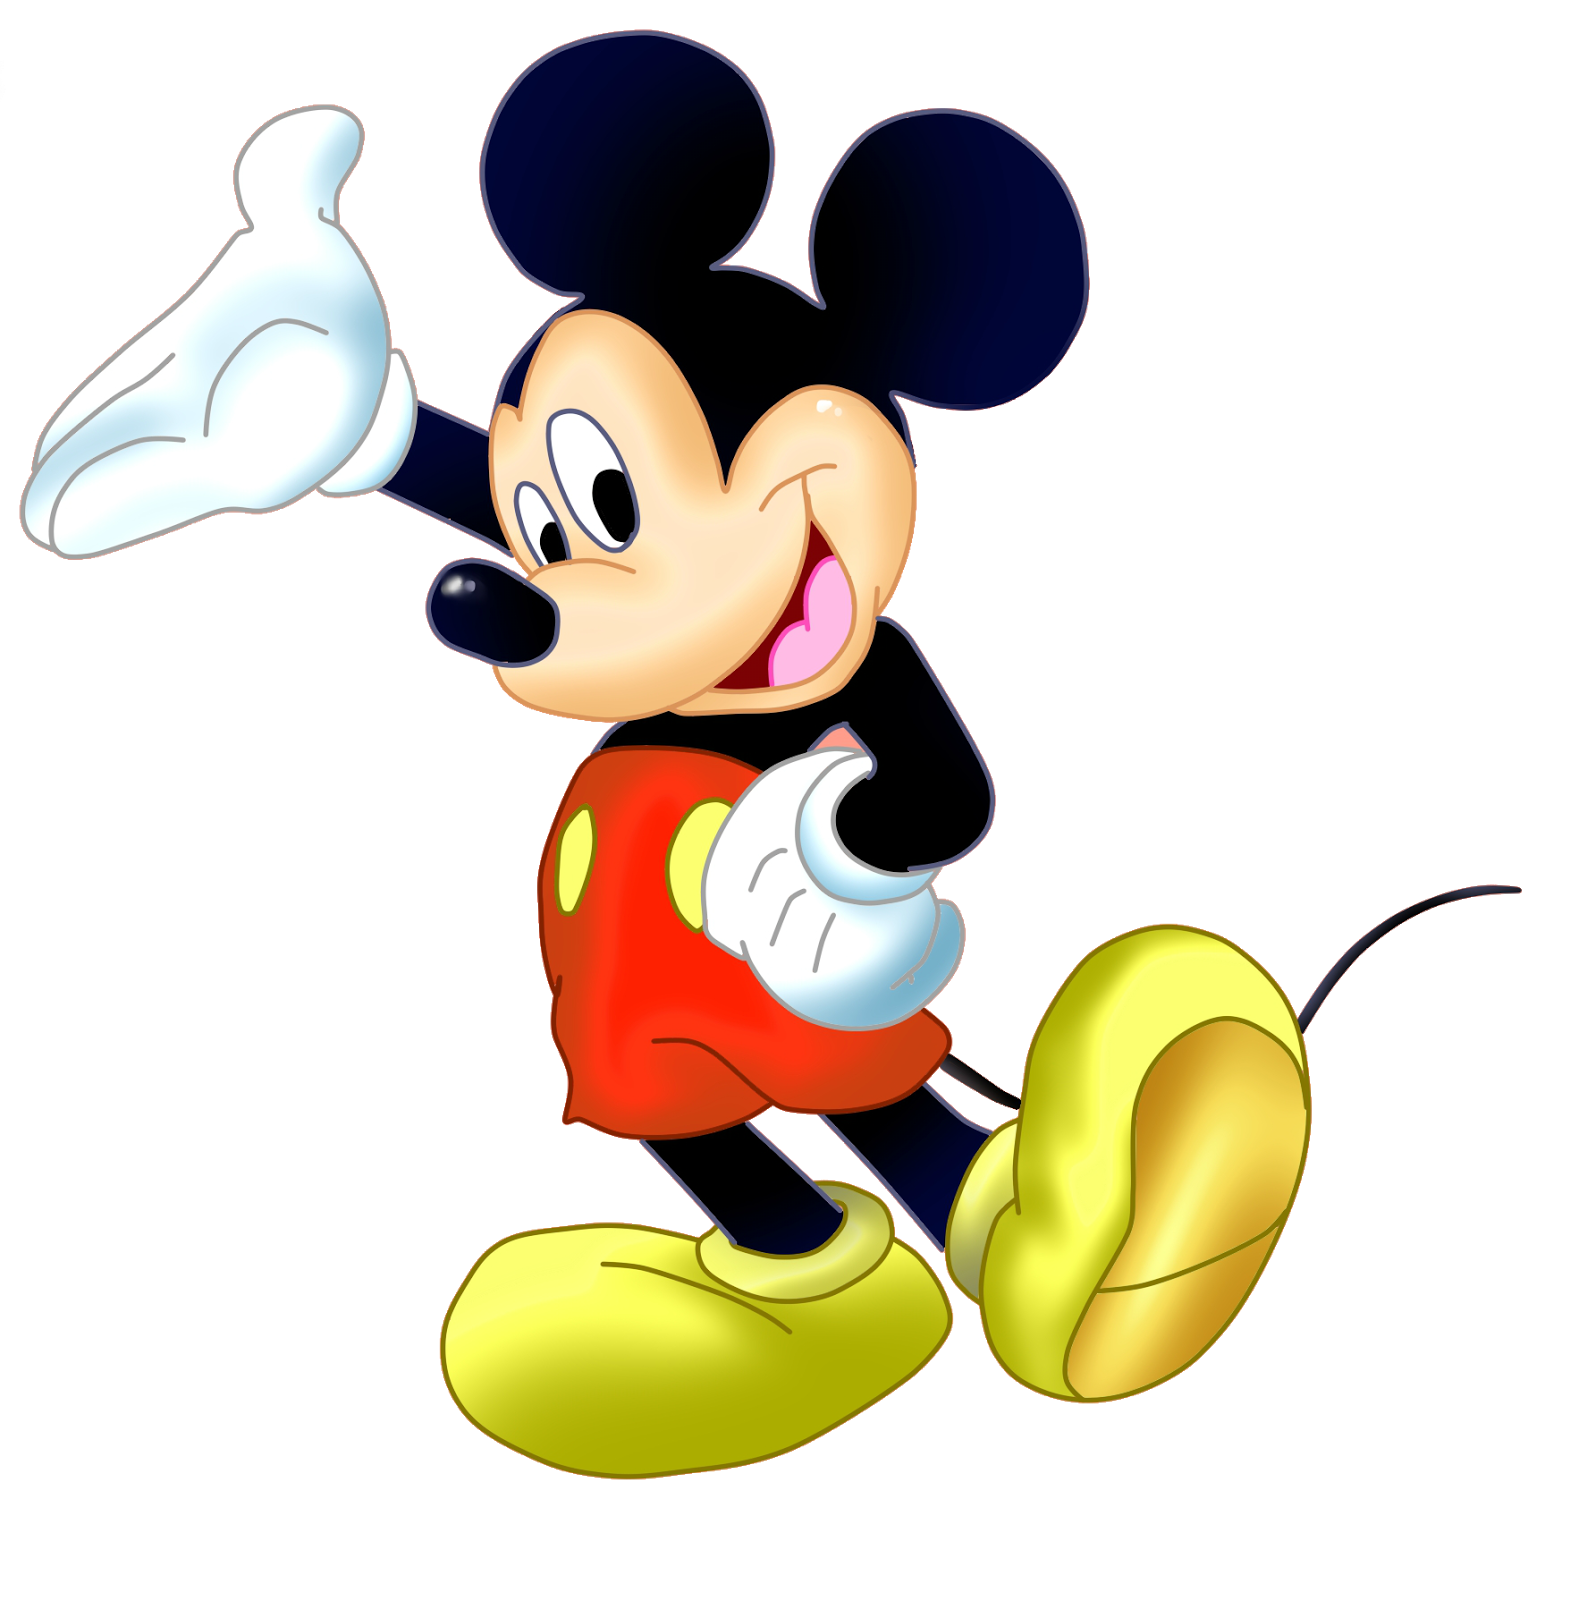 Mickey Mouse Friends Png Image Purepng Free Transparent Cc0